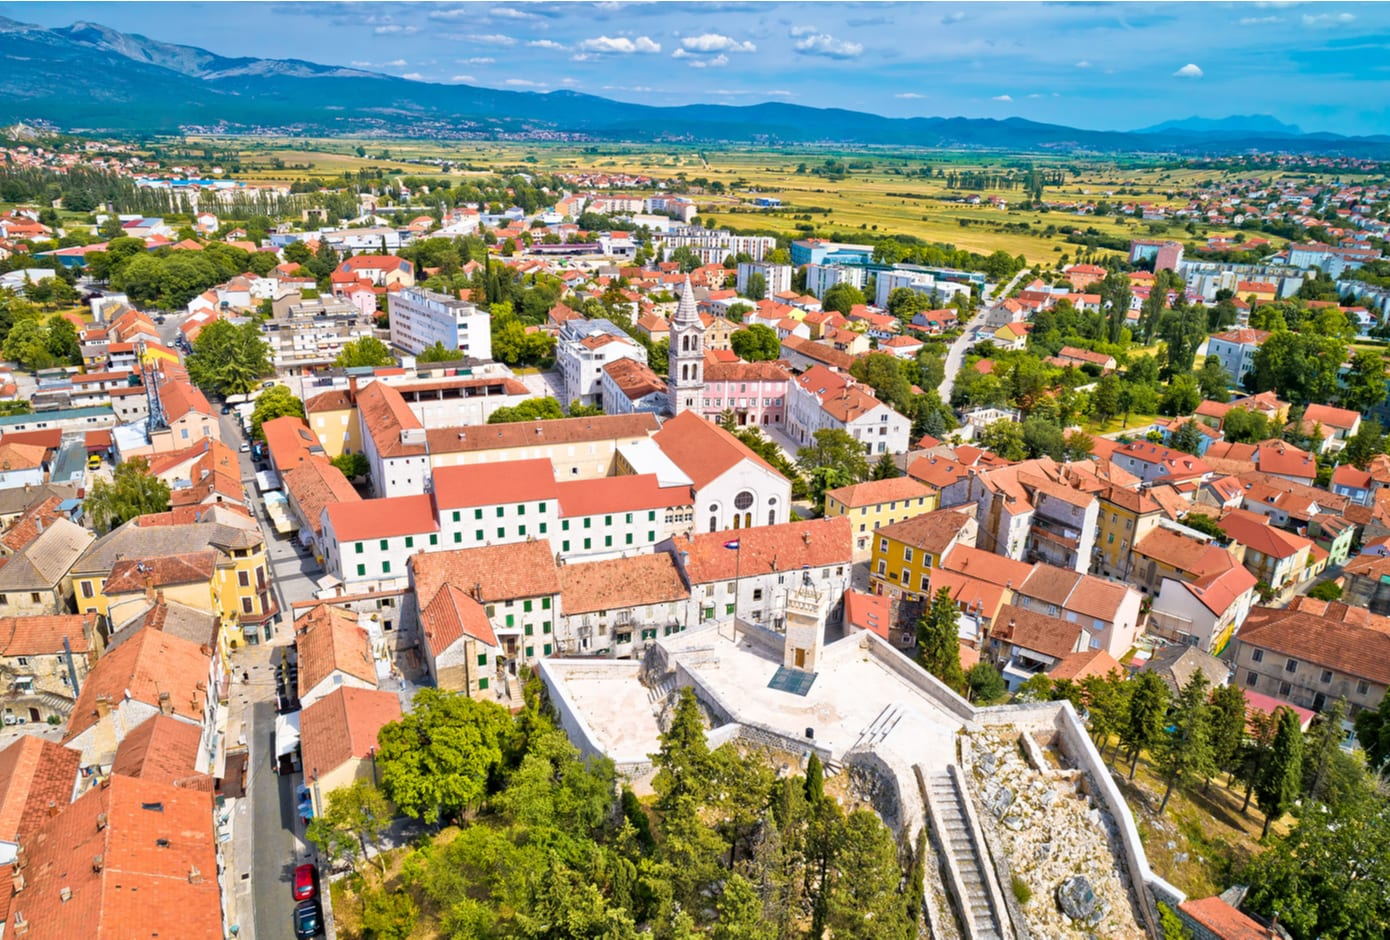 Aerial view of Sinj in Dalmatia hinterland southern Croatia